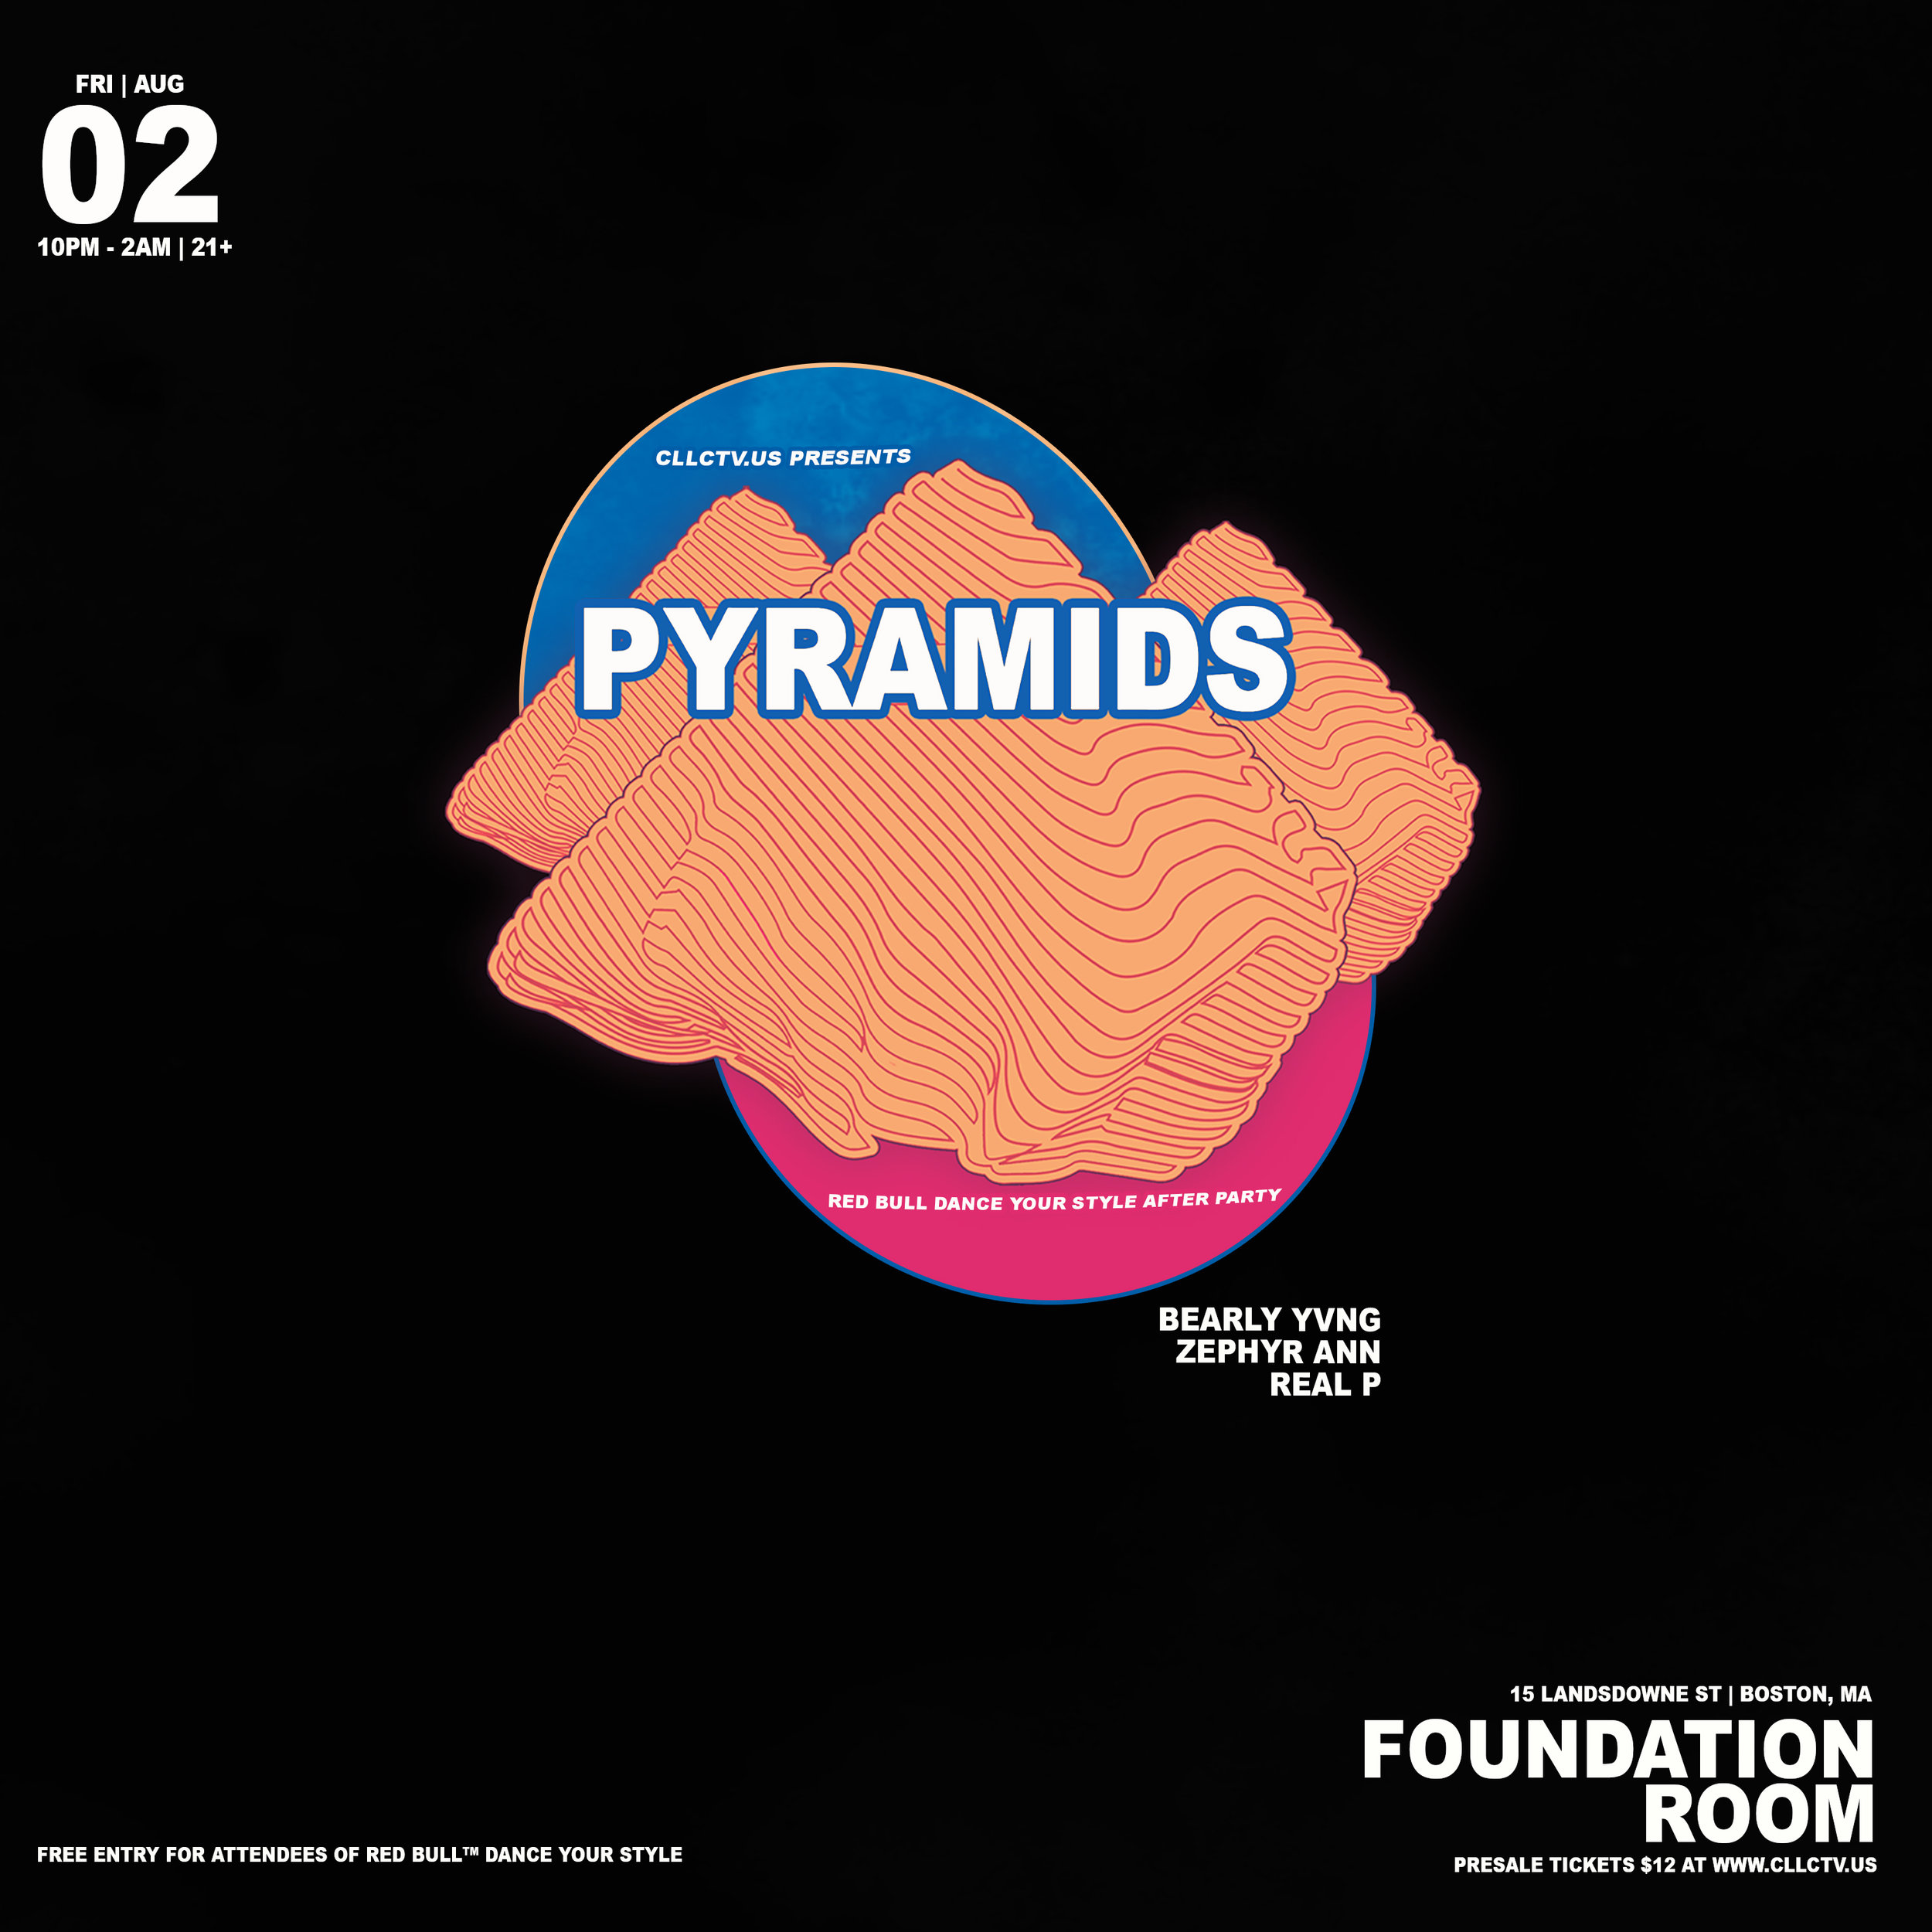 """PYRAMIDS"" is a bi-weekly event that challenges prospective attendees to progressively build their sonic taste and think of nightlife from an elevated perspective. We want to develop a lasting party experience that captivates their imagination, similar to the way pyramids have captured the imaginations of humans over several generations.  This week we've teamed up with our friends at Red Bull to host the official after party for their freestyle Dance Battle  Dance Your Style.   This month's premier event features sets from:   Bearly Yvng    Zephyr Ann (NYC)    DJ Real P   Photo booth / shoots available, premium cocktails/ mocktails from St. Germain & Red Bull.  $12 (Presale) 